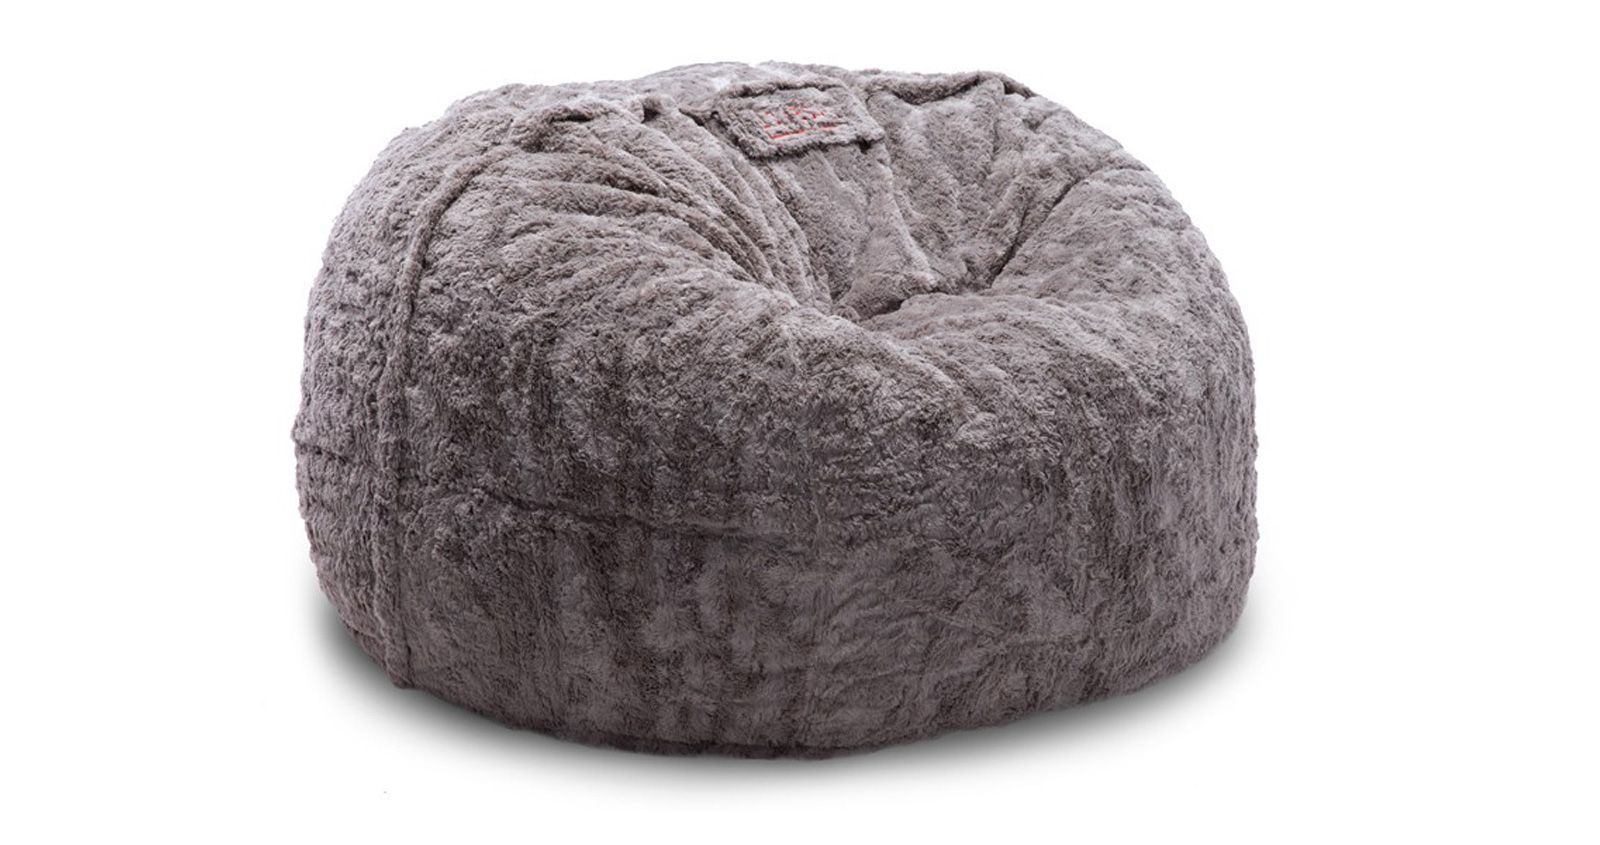 Lovesac The Big One Fits Three Adults Comfortably Super